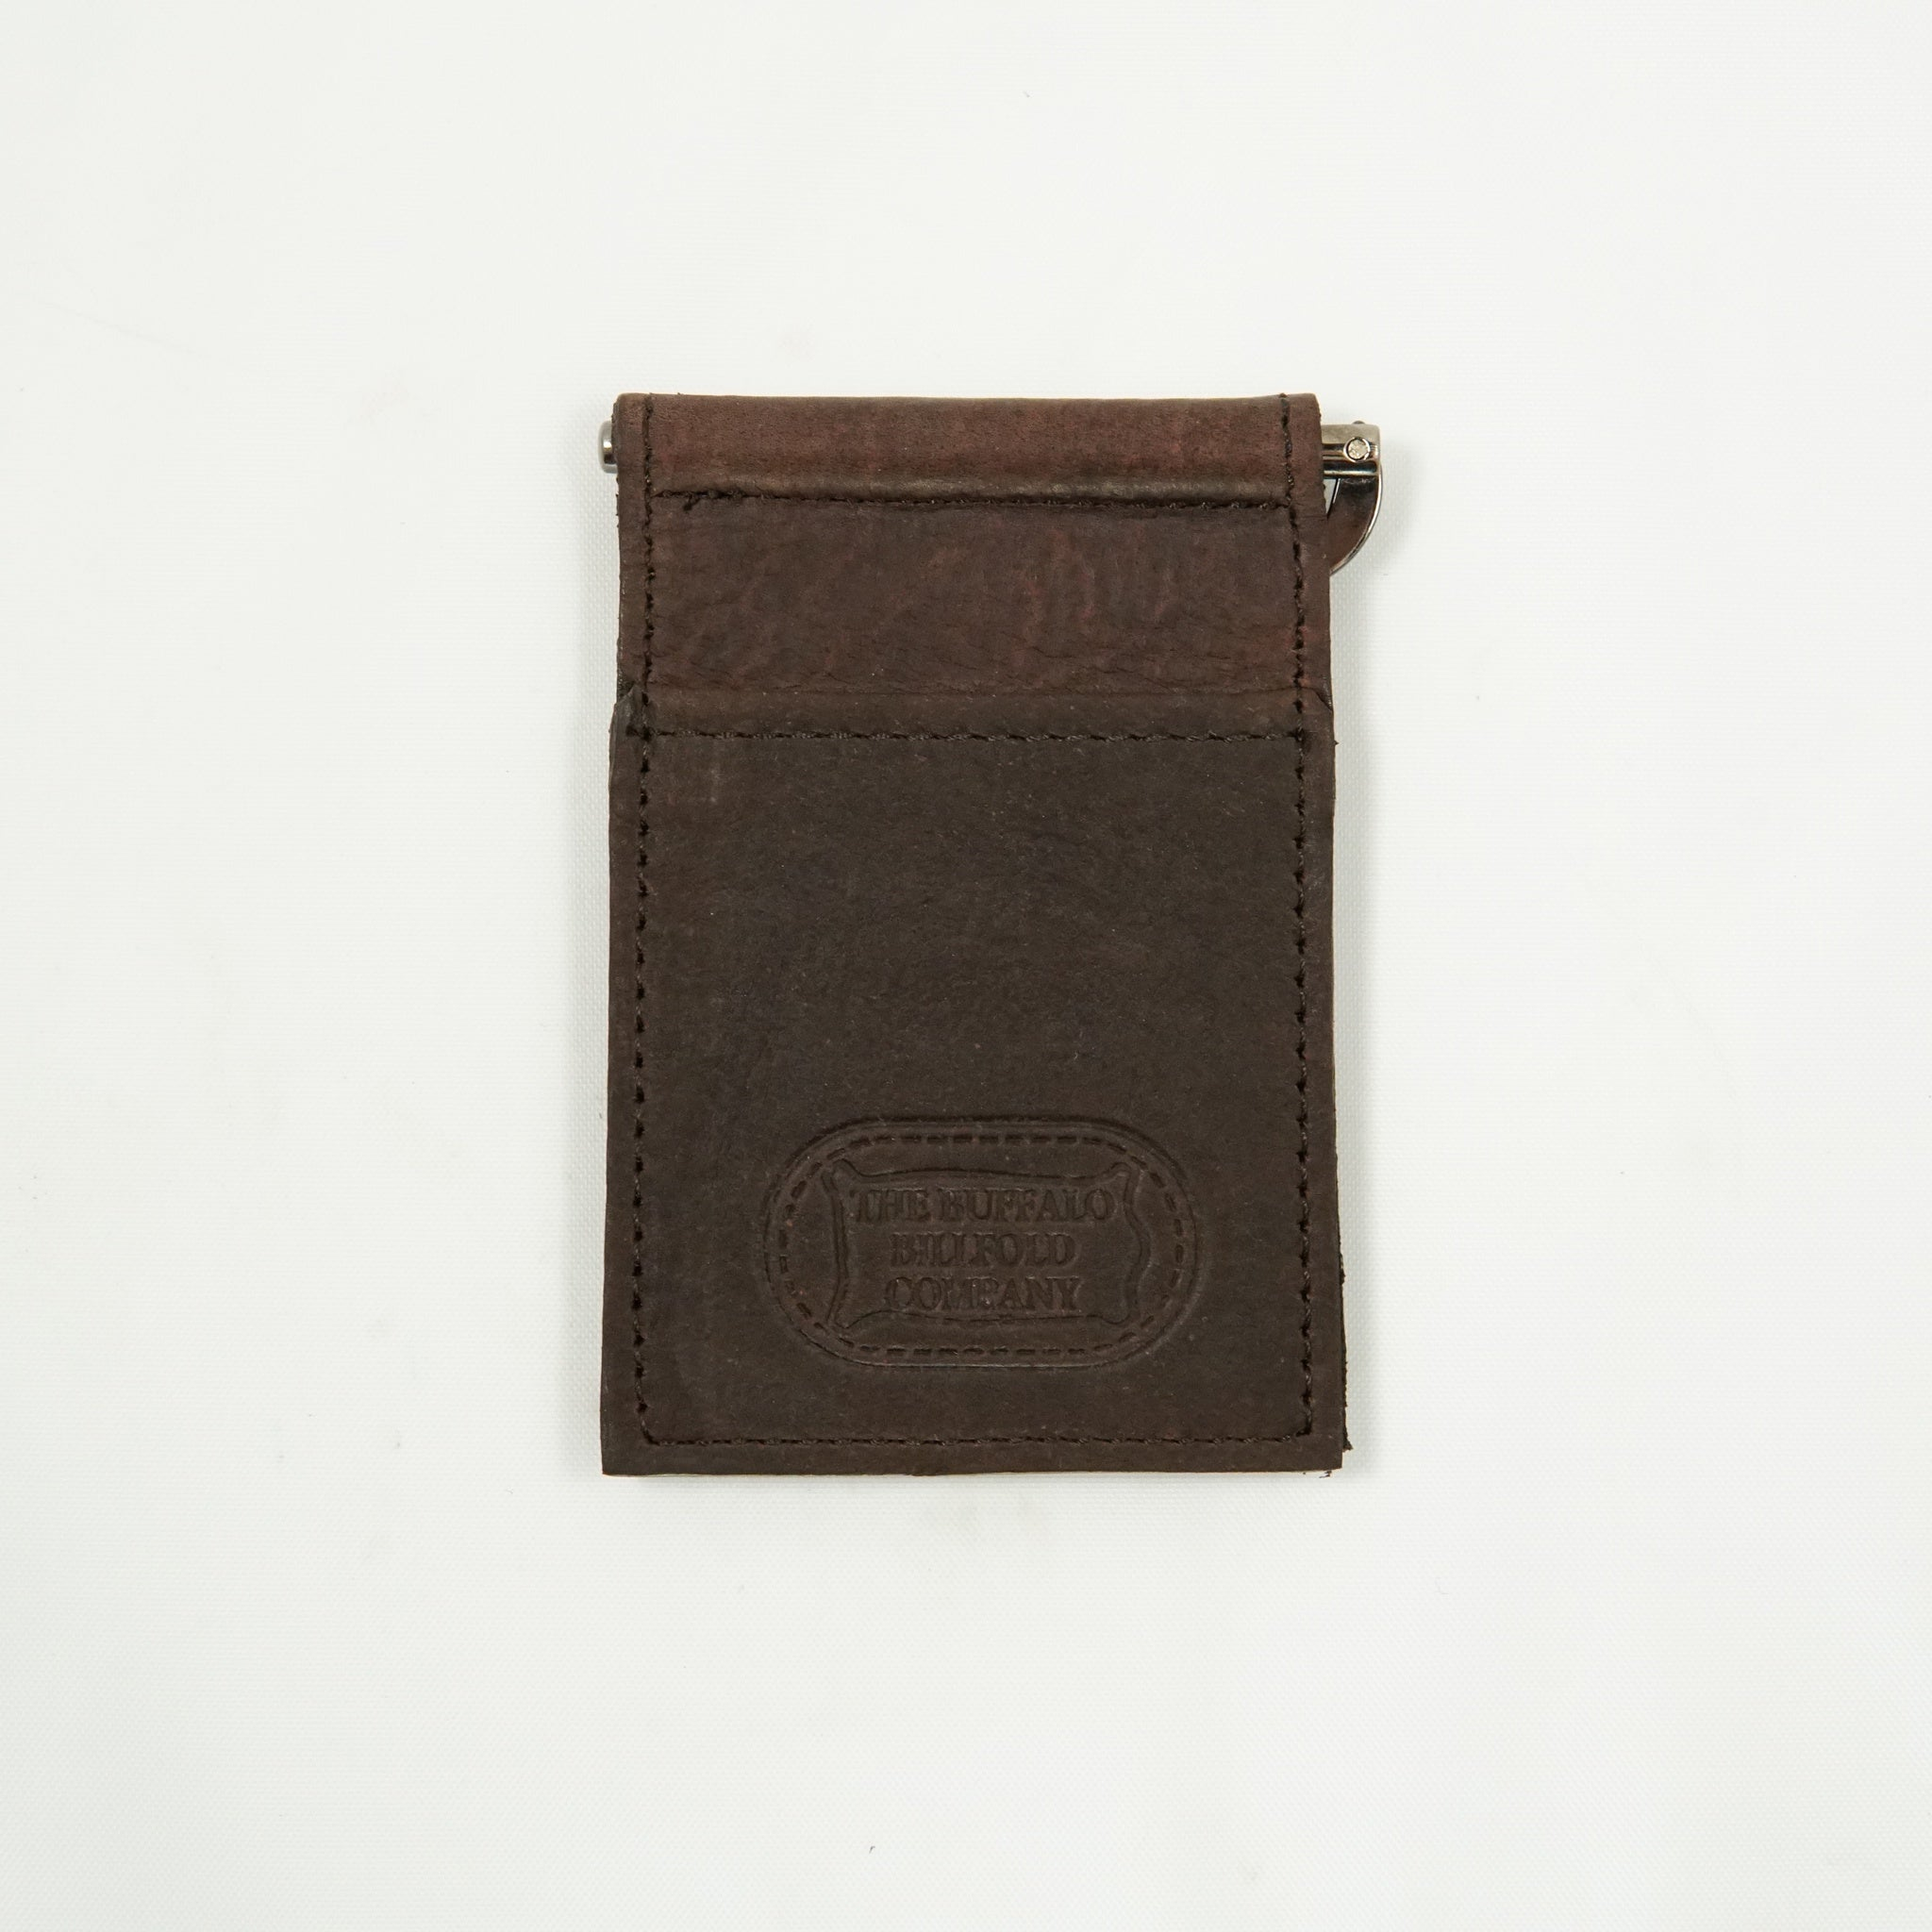 BUFFALO LEATHER MONEY CLIP